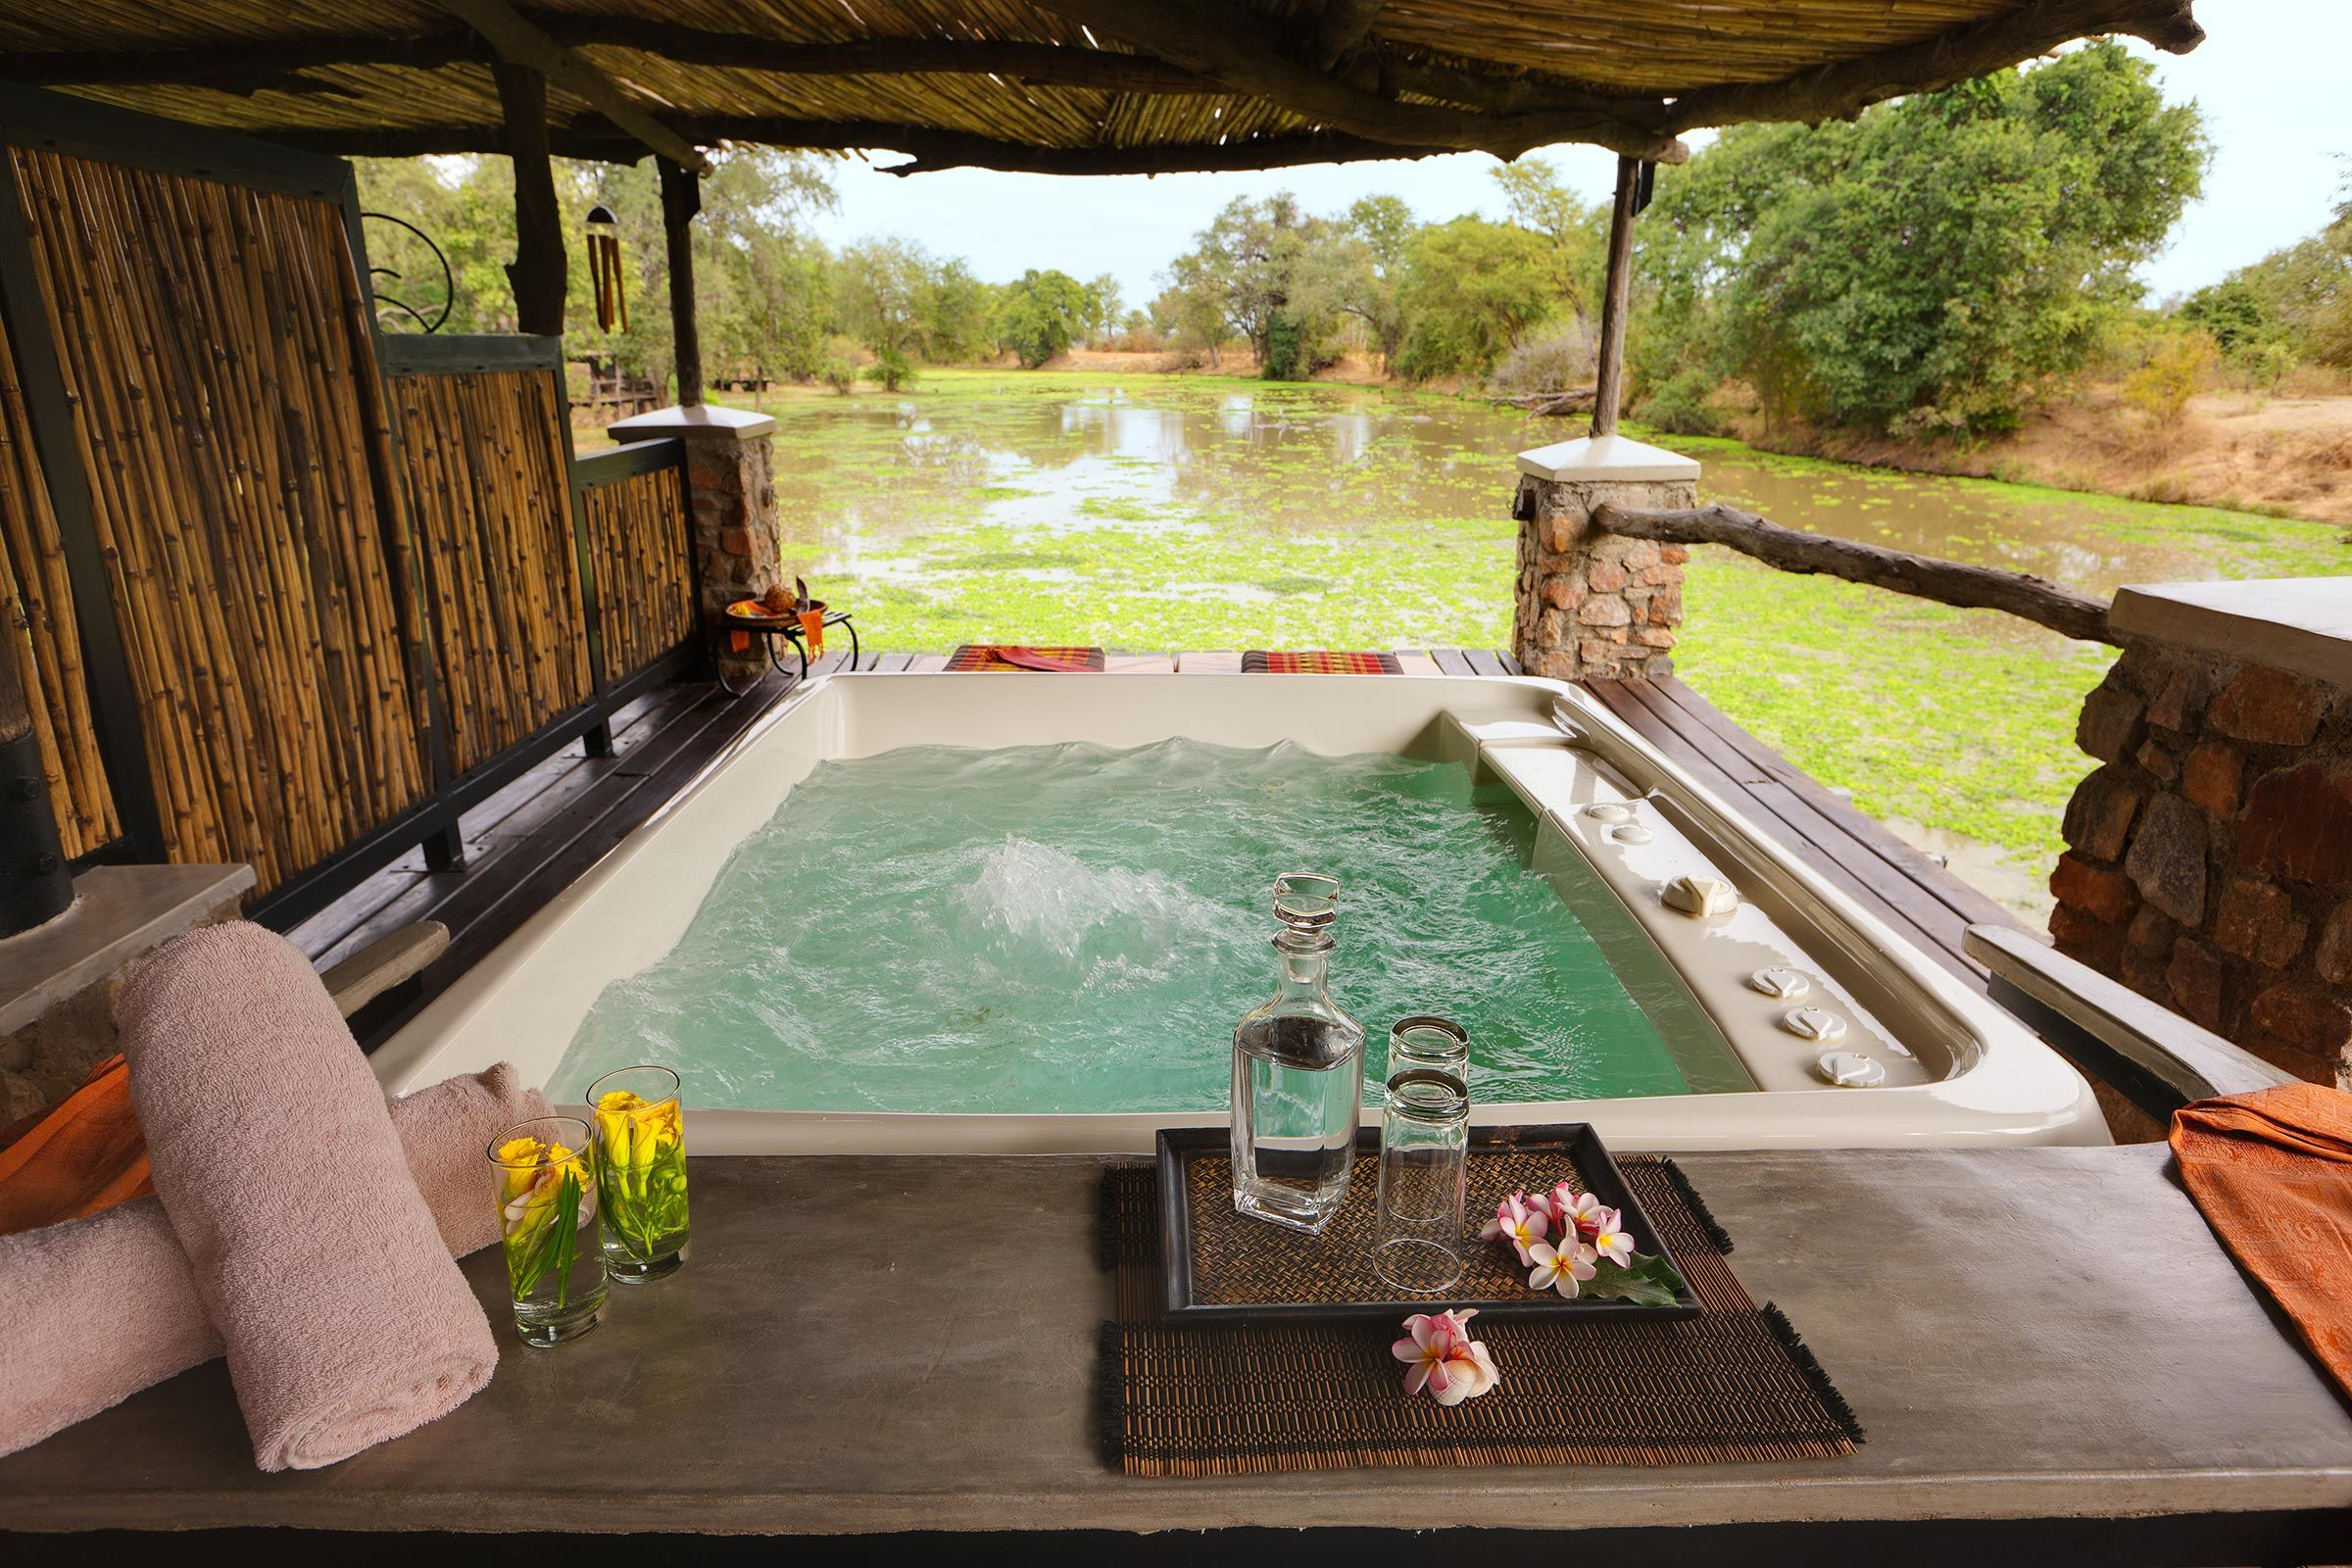 fancy total relaxation while looking at a lagoon full of hippos